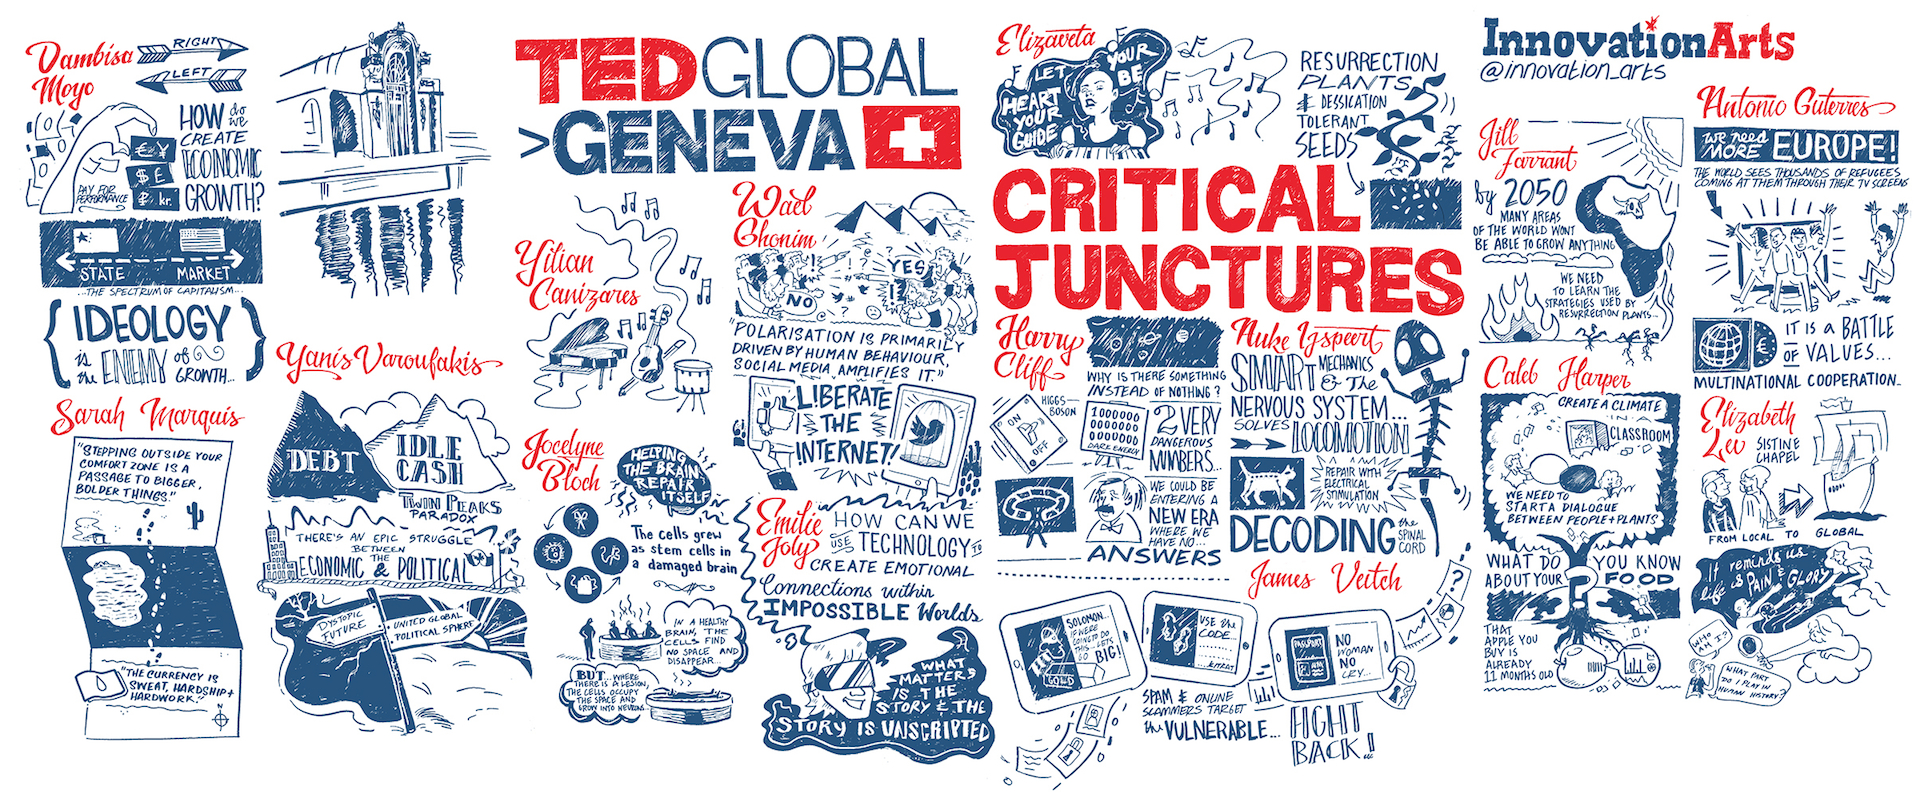 TED Global Geneva visual notes insert